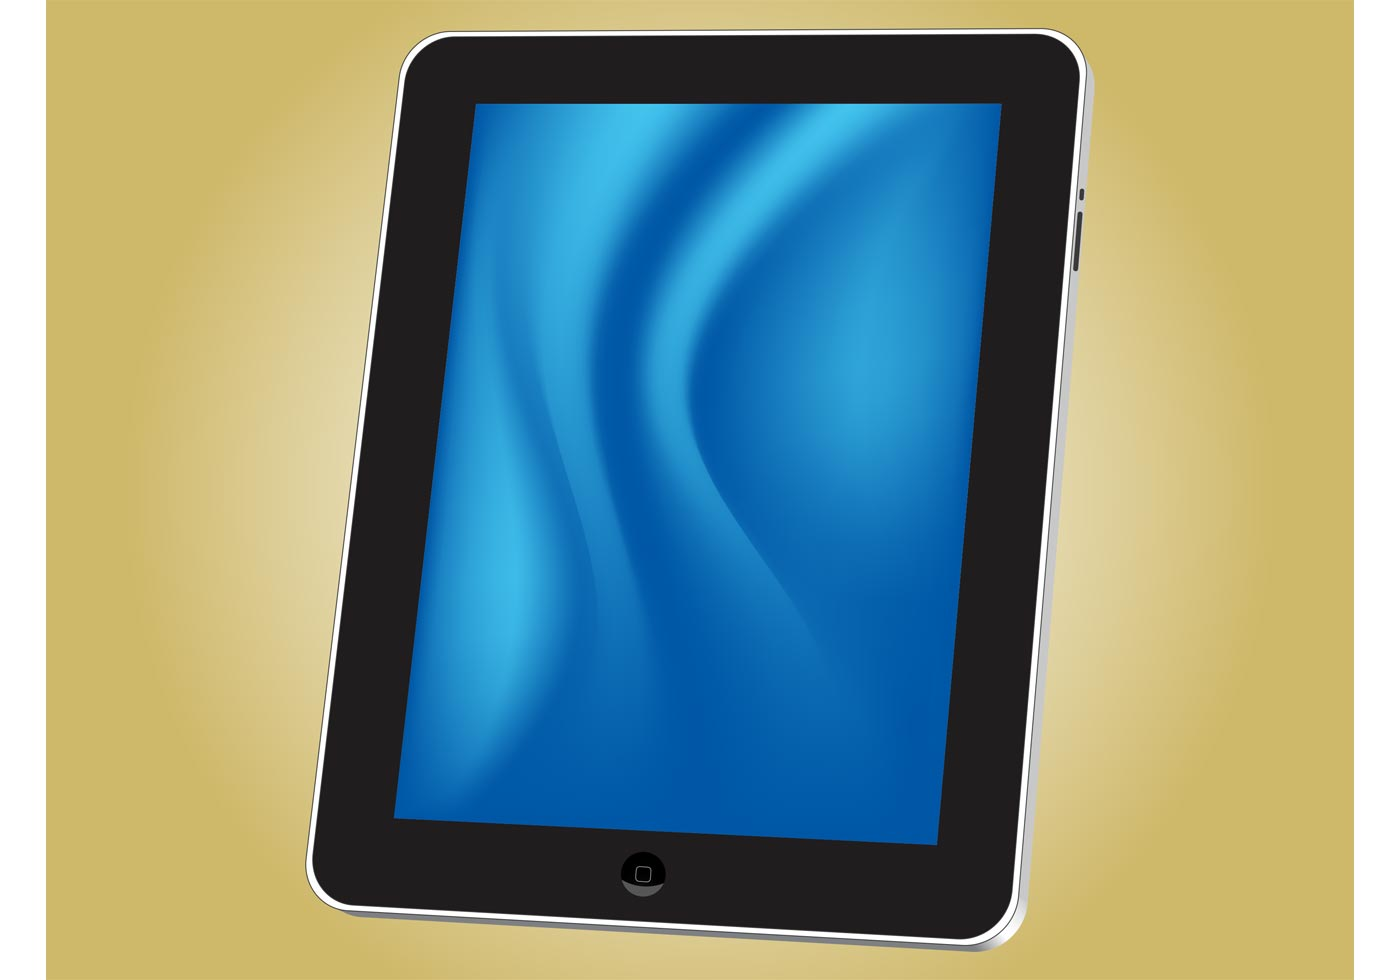 Tablet Pc Tablet Pc Free Vector Art 3778 Free Downloads